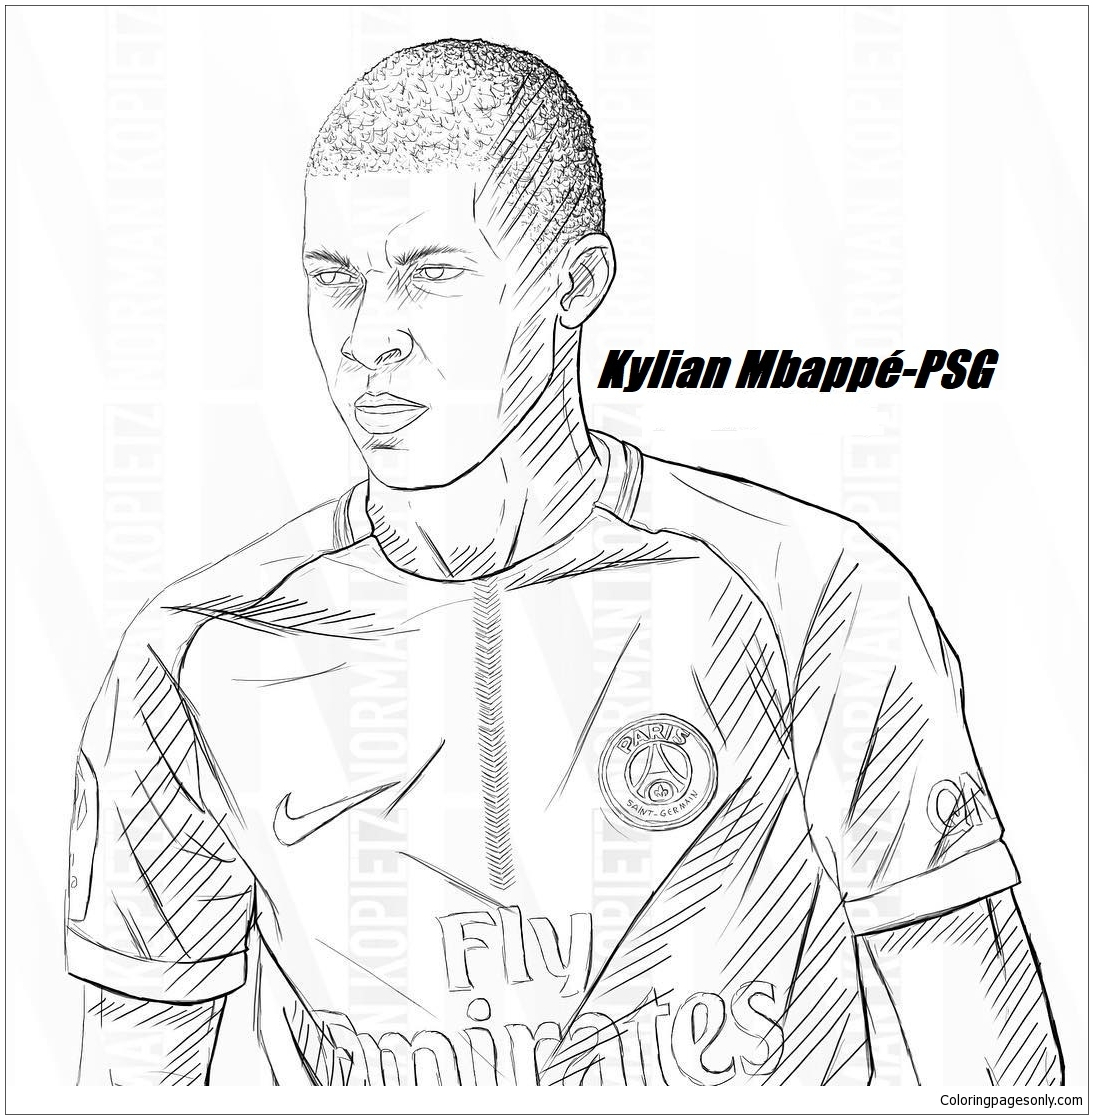 Kylian Mbapp Image 8 Coloring Page Free Coloring Pages